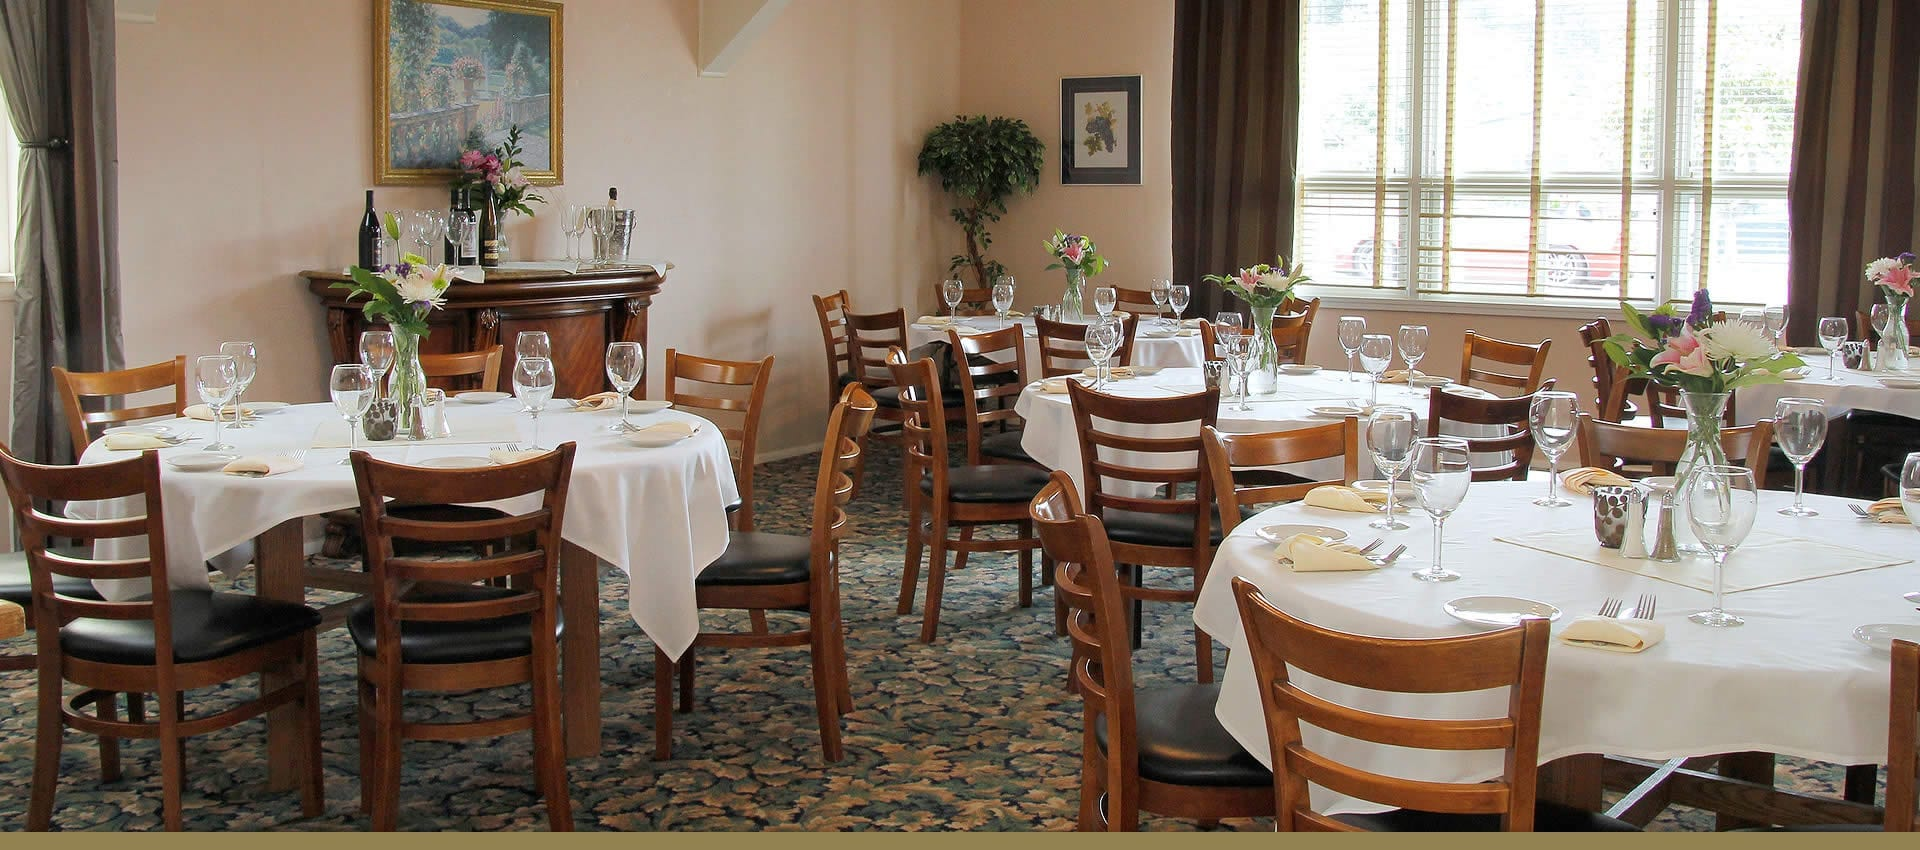 Victorian Inn Hotel Event Room Holds 40 Guests